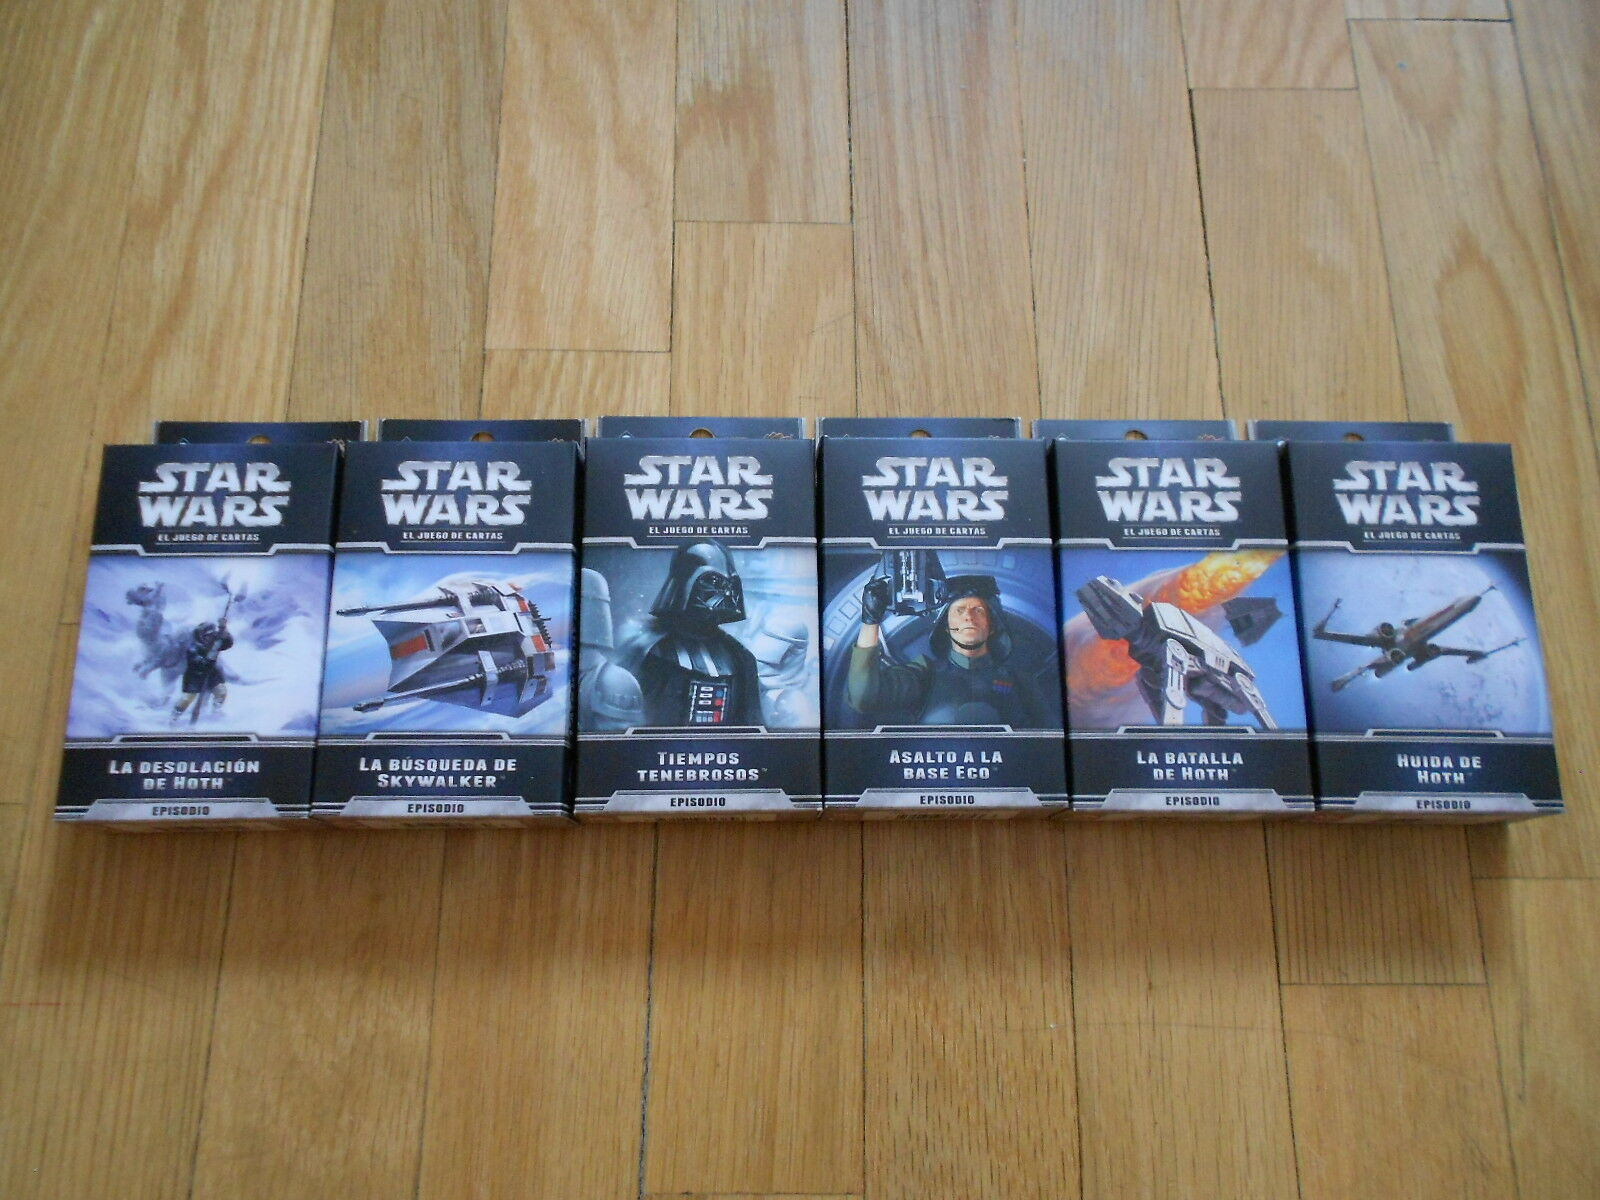 Game Letters Star Wars LCG - - - El Cycle of Hoth - Complete - Edge - Ff bd3